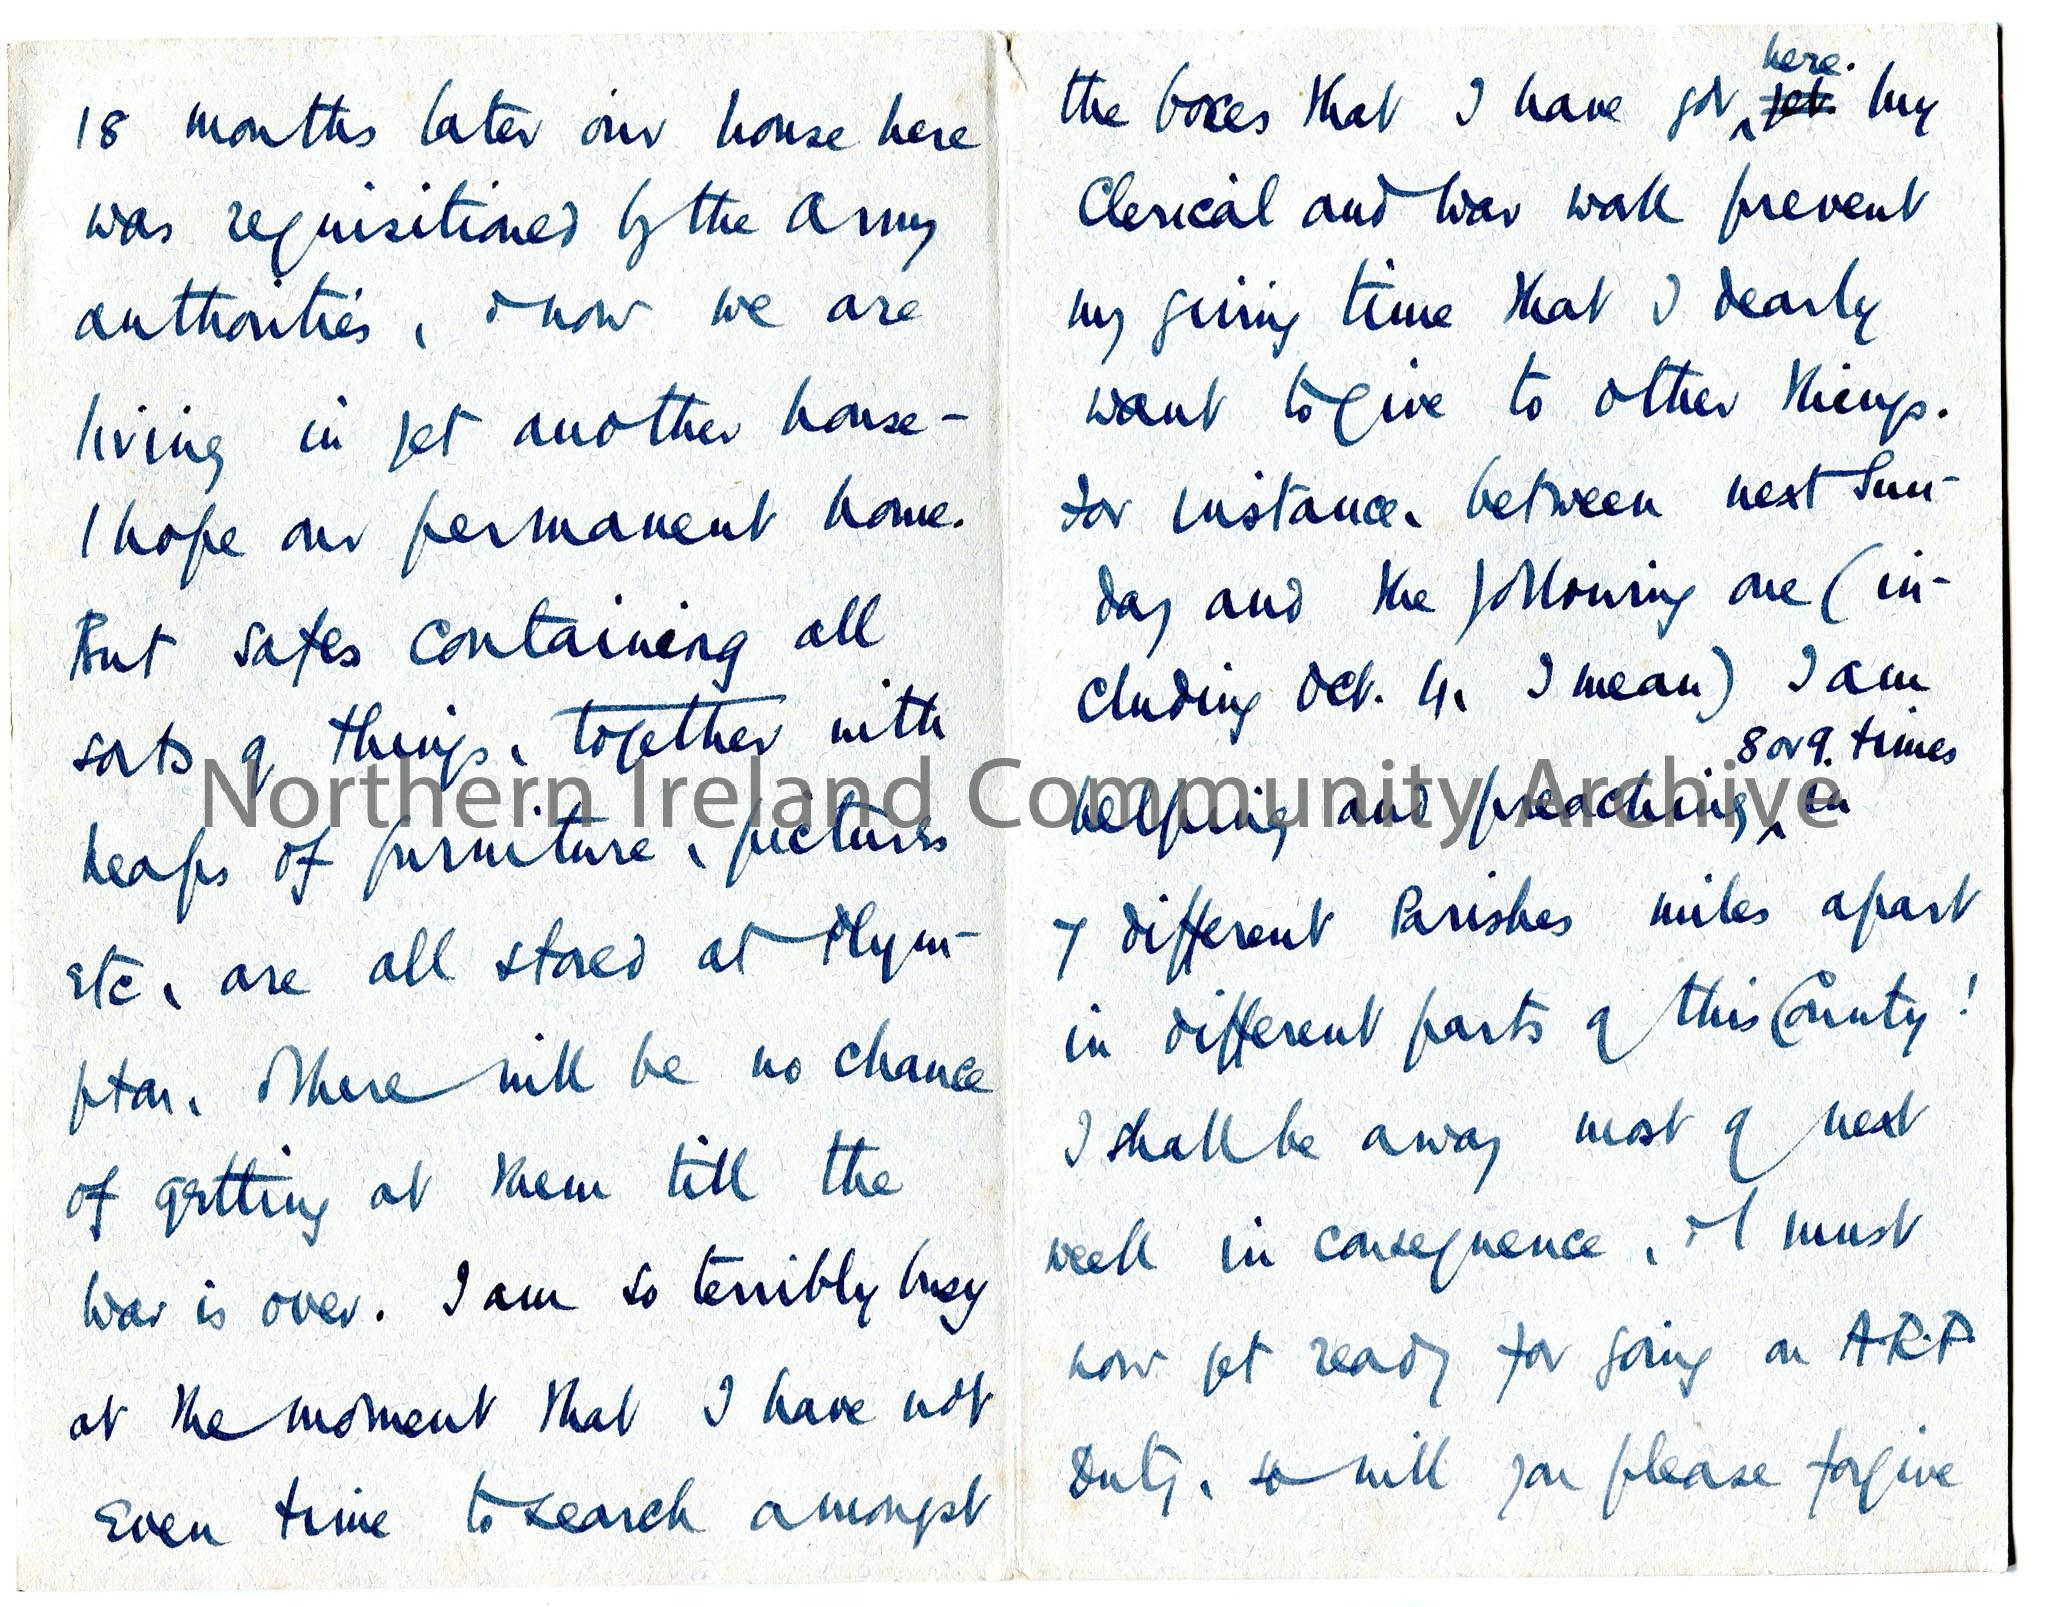 One page of 2 page handwritten letter re history of Ross family. Mentions having to move house several times during WWII. Wants Limavady Corporation r… – img481